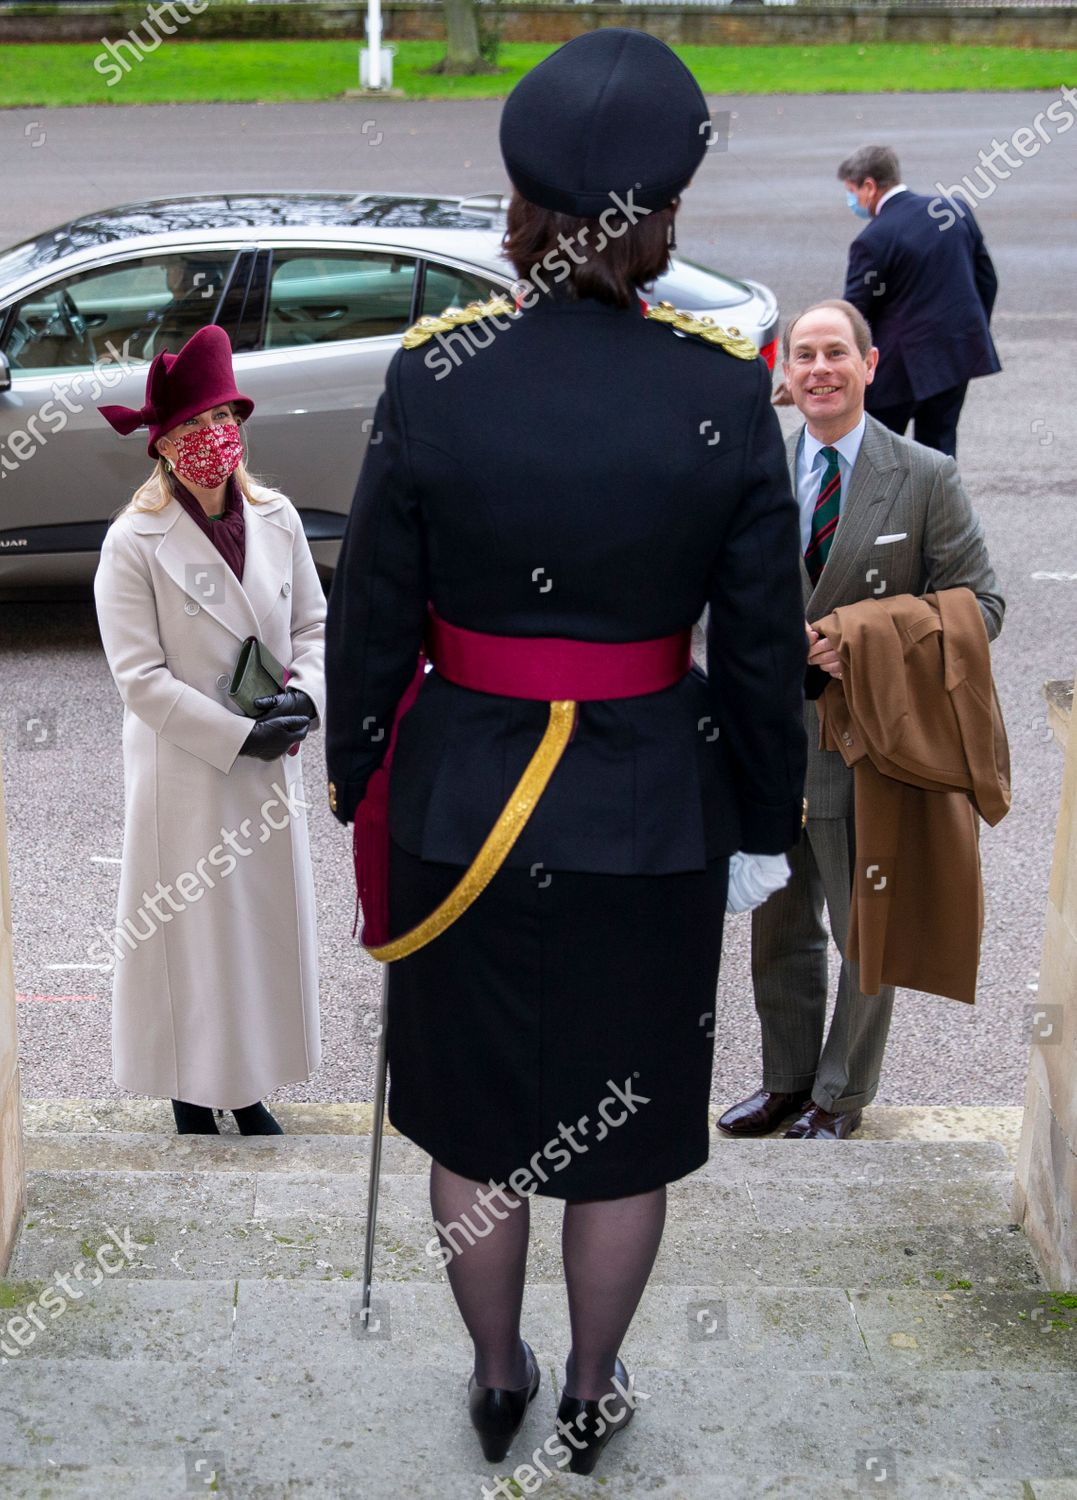 prince-edward-and-sophie-countess-of-wessex-visit-to-the-corps-of-army-music-kneller-hall-twickenham-london-uk-shutterstock-editorial-11504868m.jpg